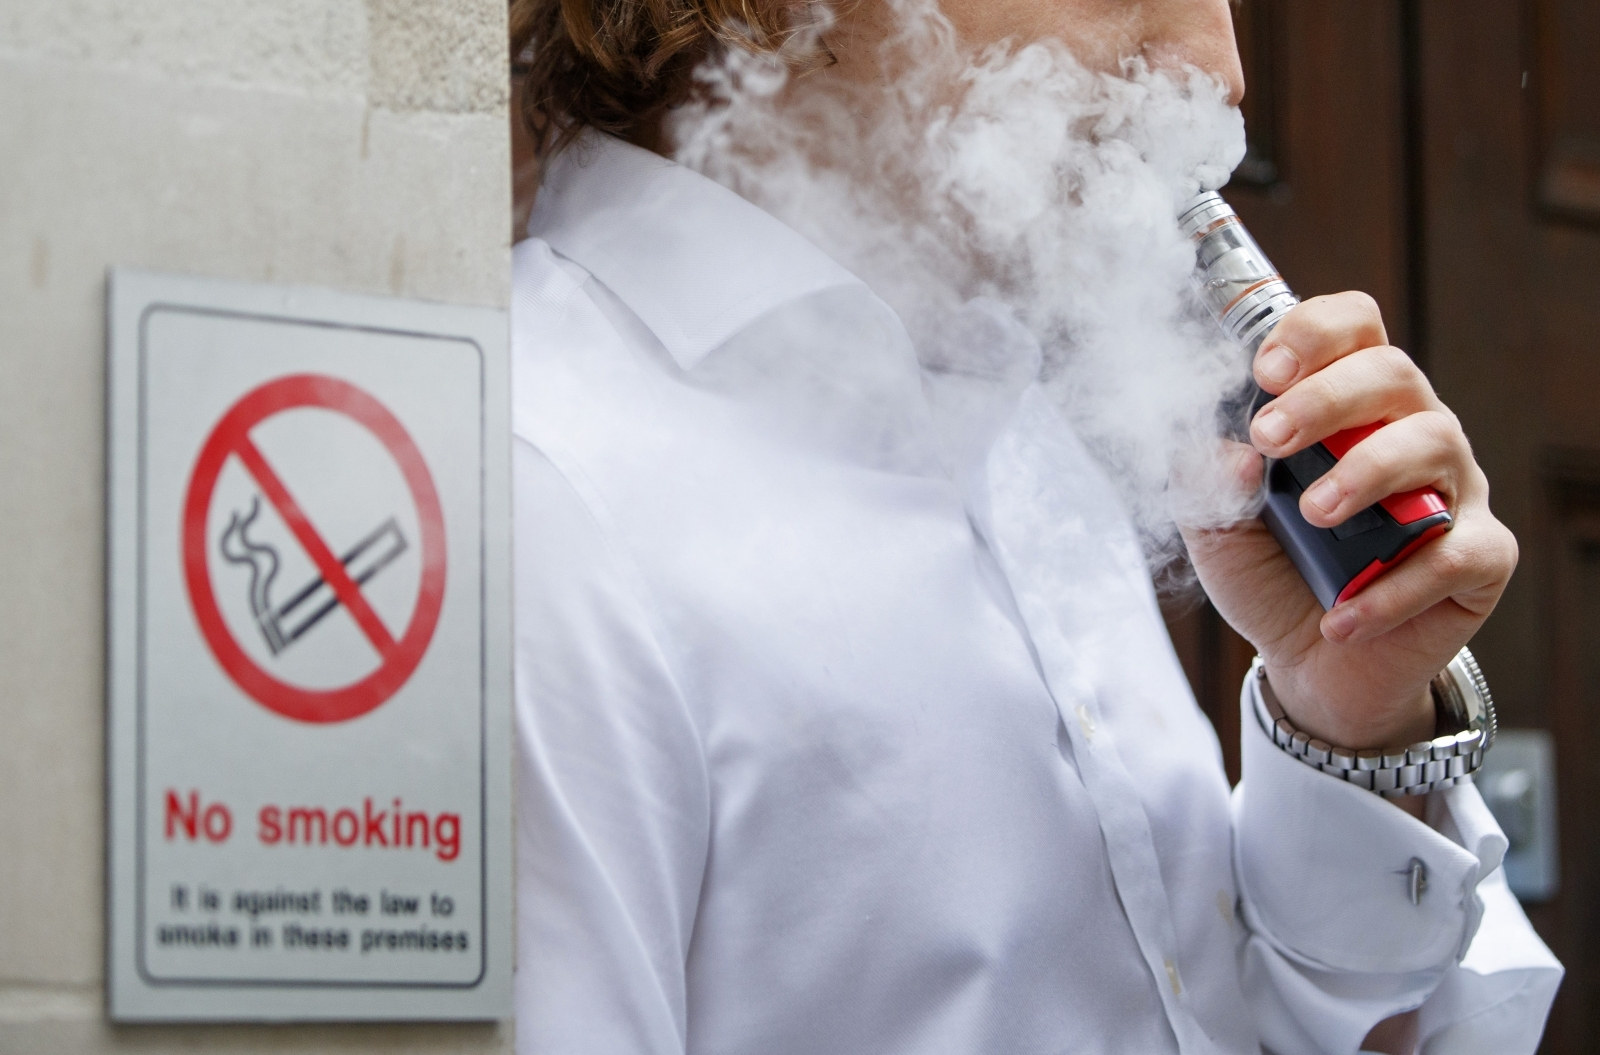 Millennials are killing cigarettes: Teenagers prefer vaping and weed